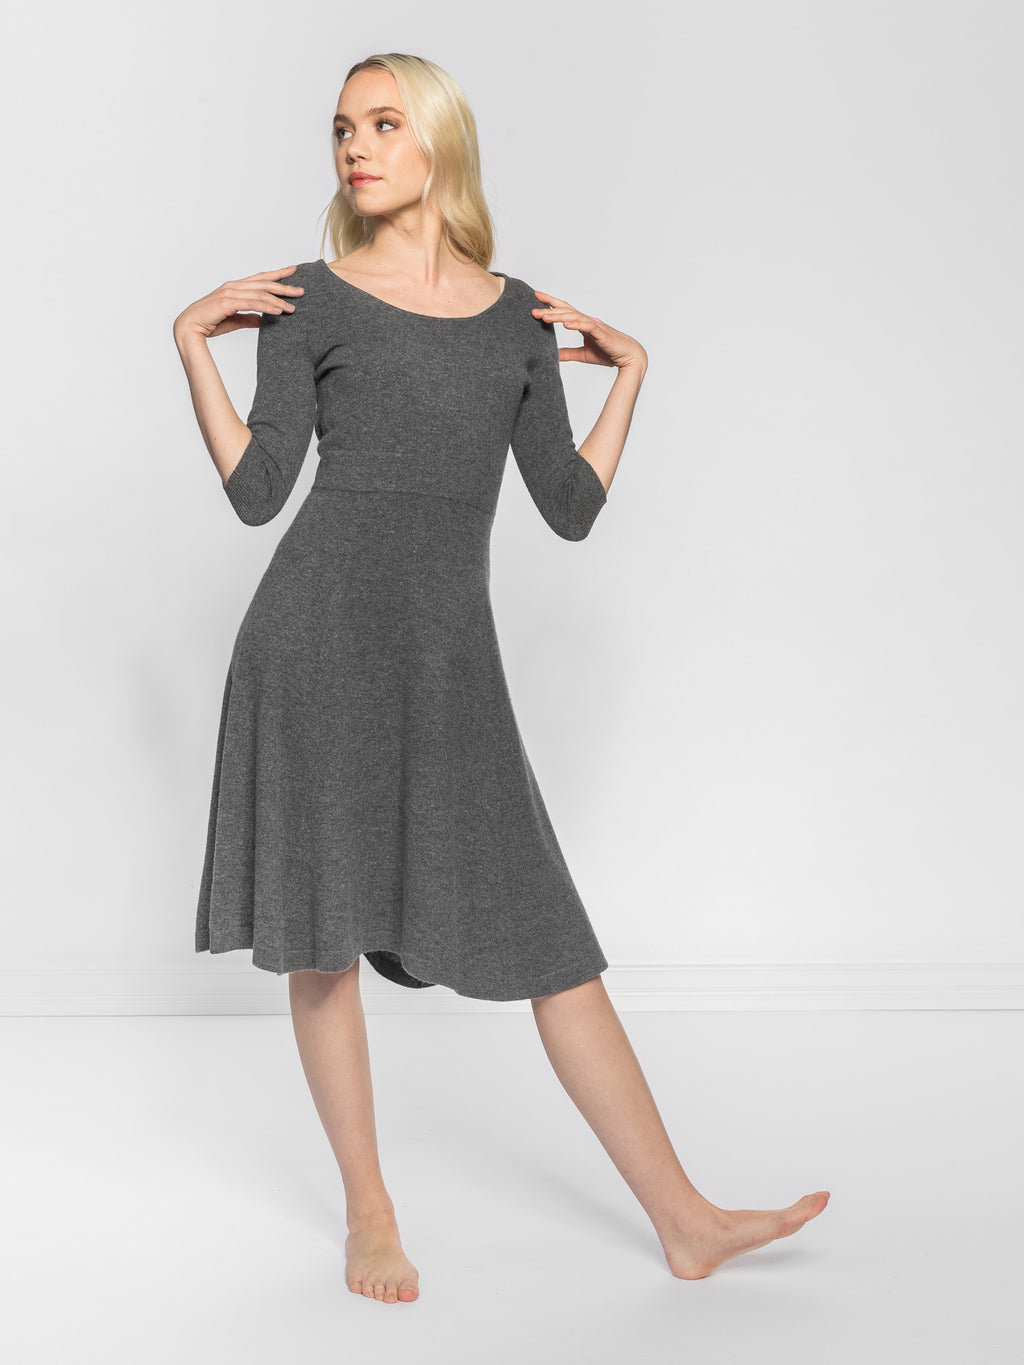 Cashmere dress Bella in 100% cashmere by Kashmina